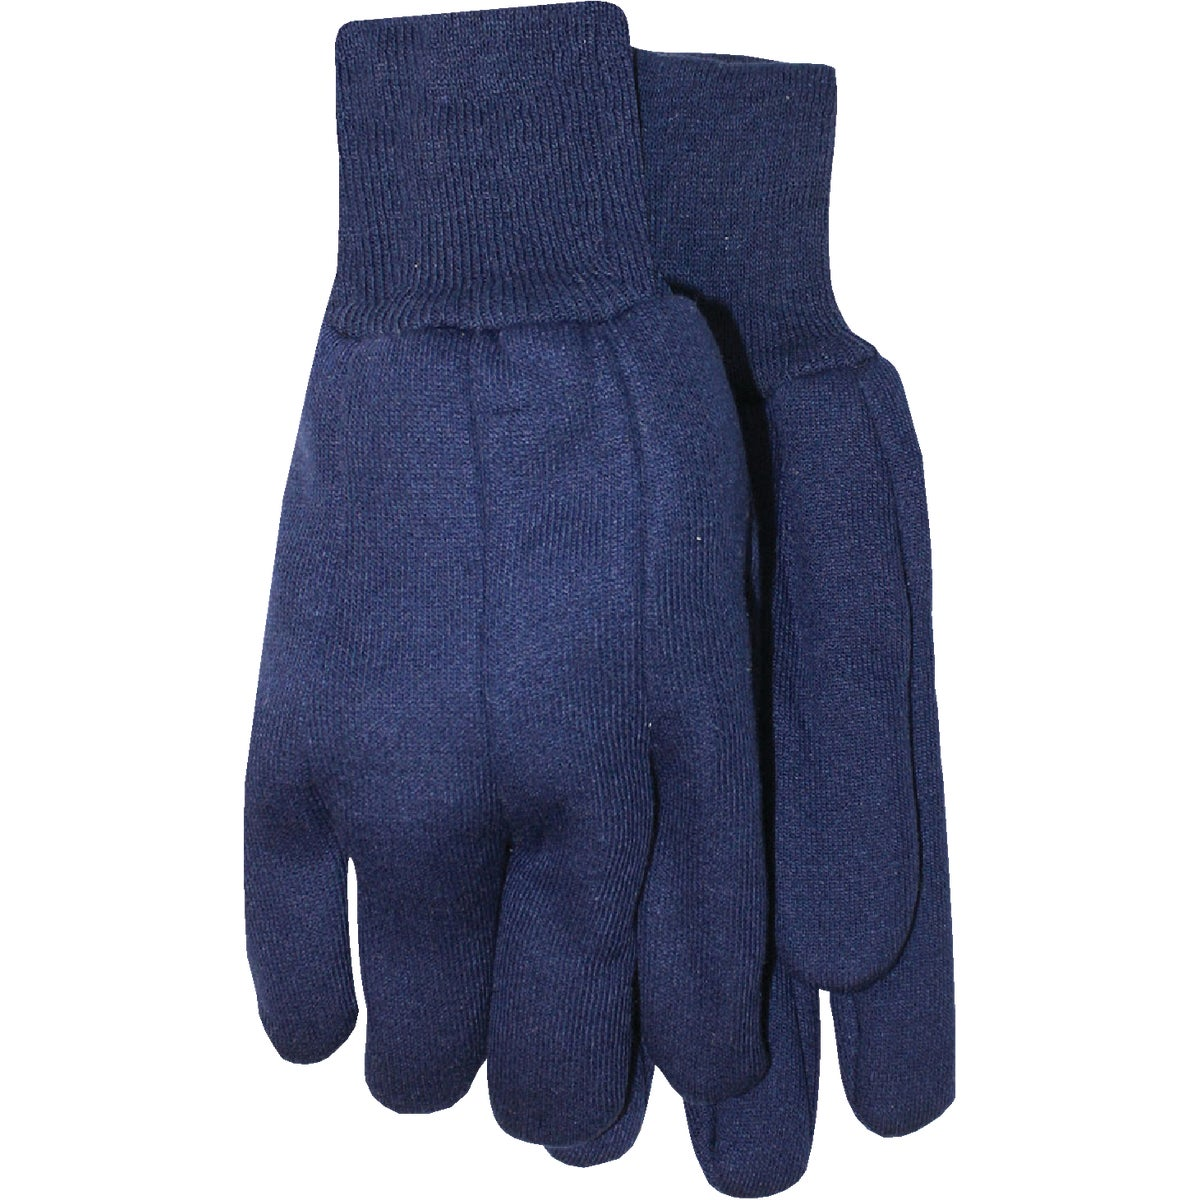 LRG MENS COLD WTHR GLOVE - 716L by Wells Lamont